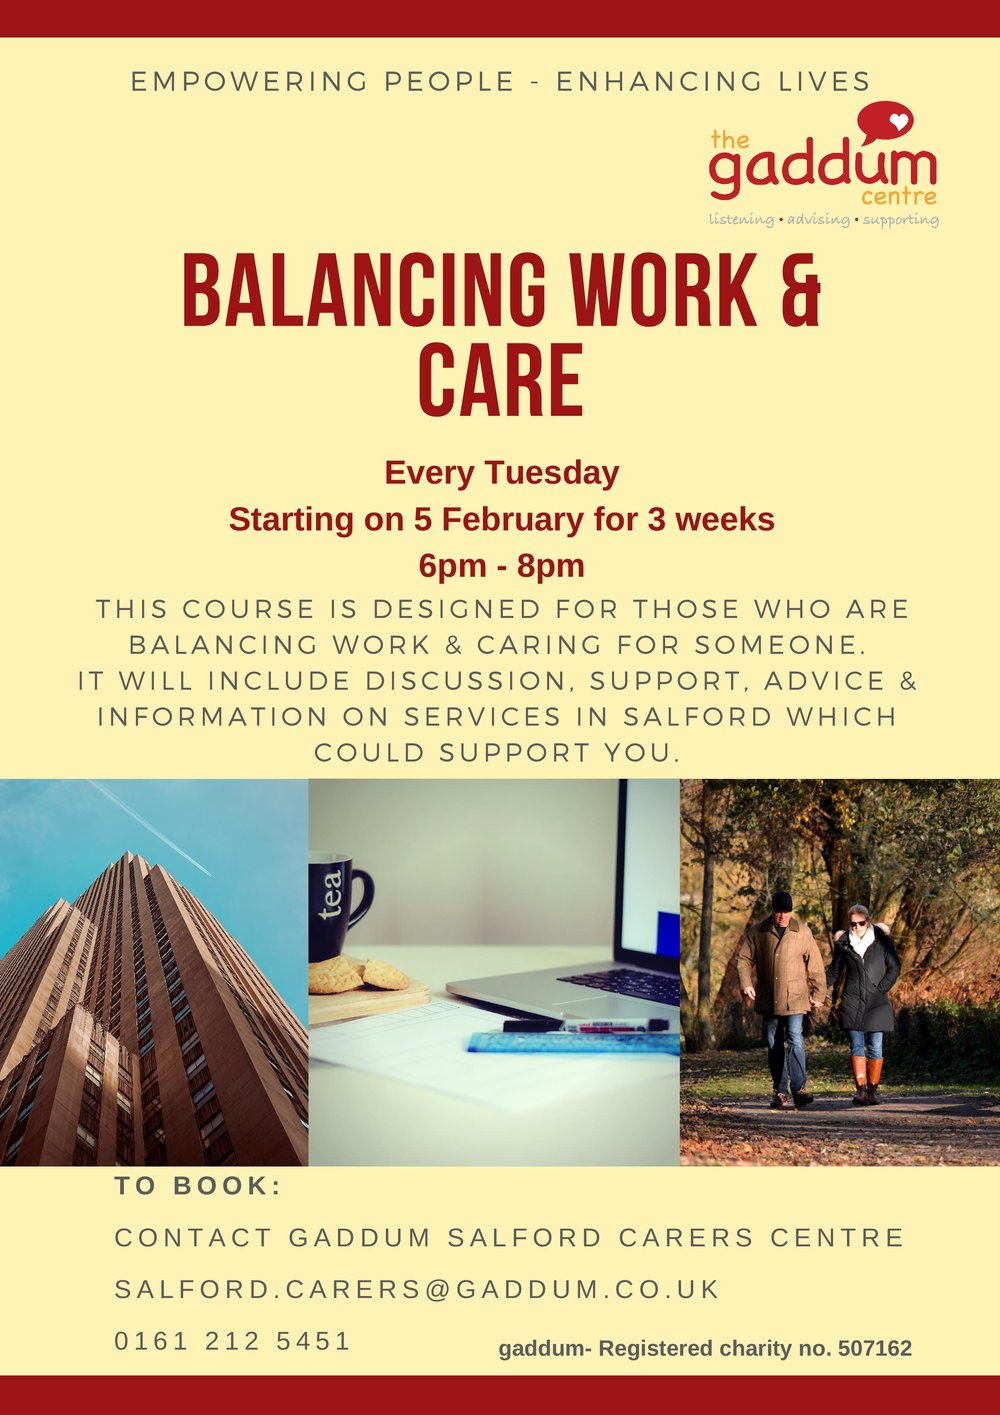 Copy of Balancing work & care-page-001.jpg